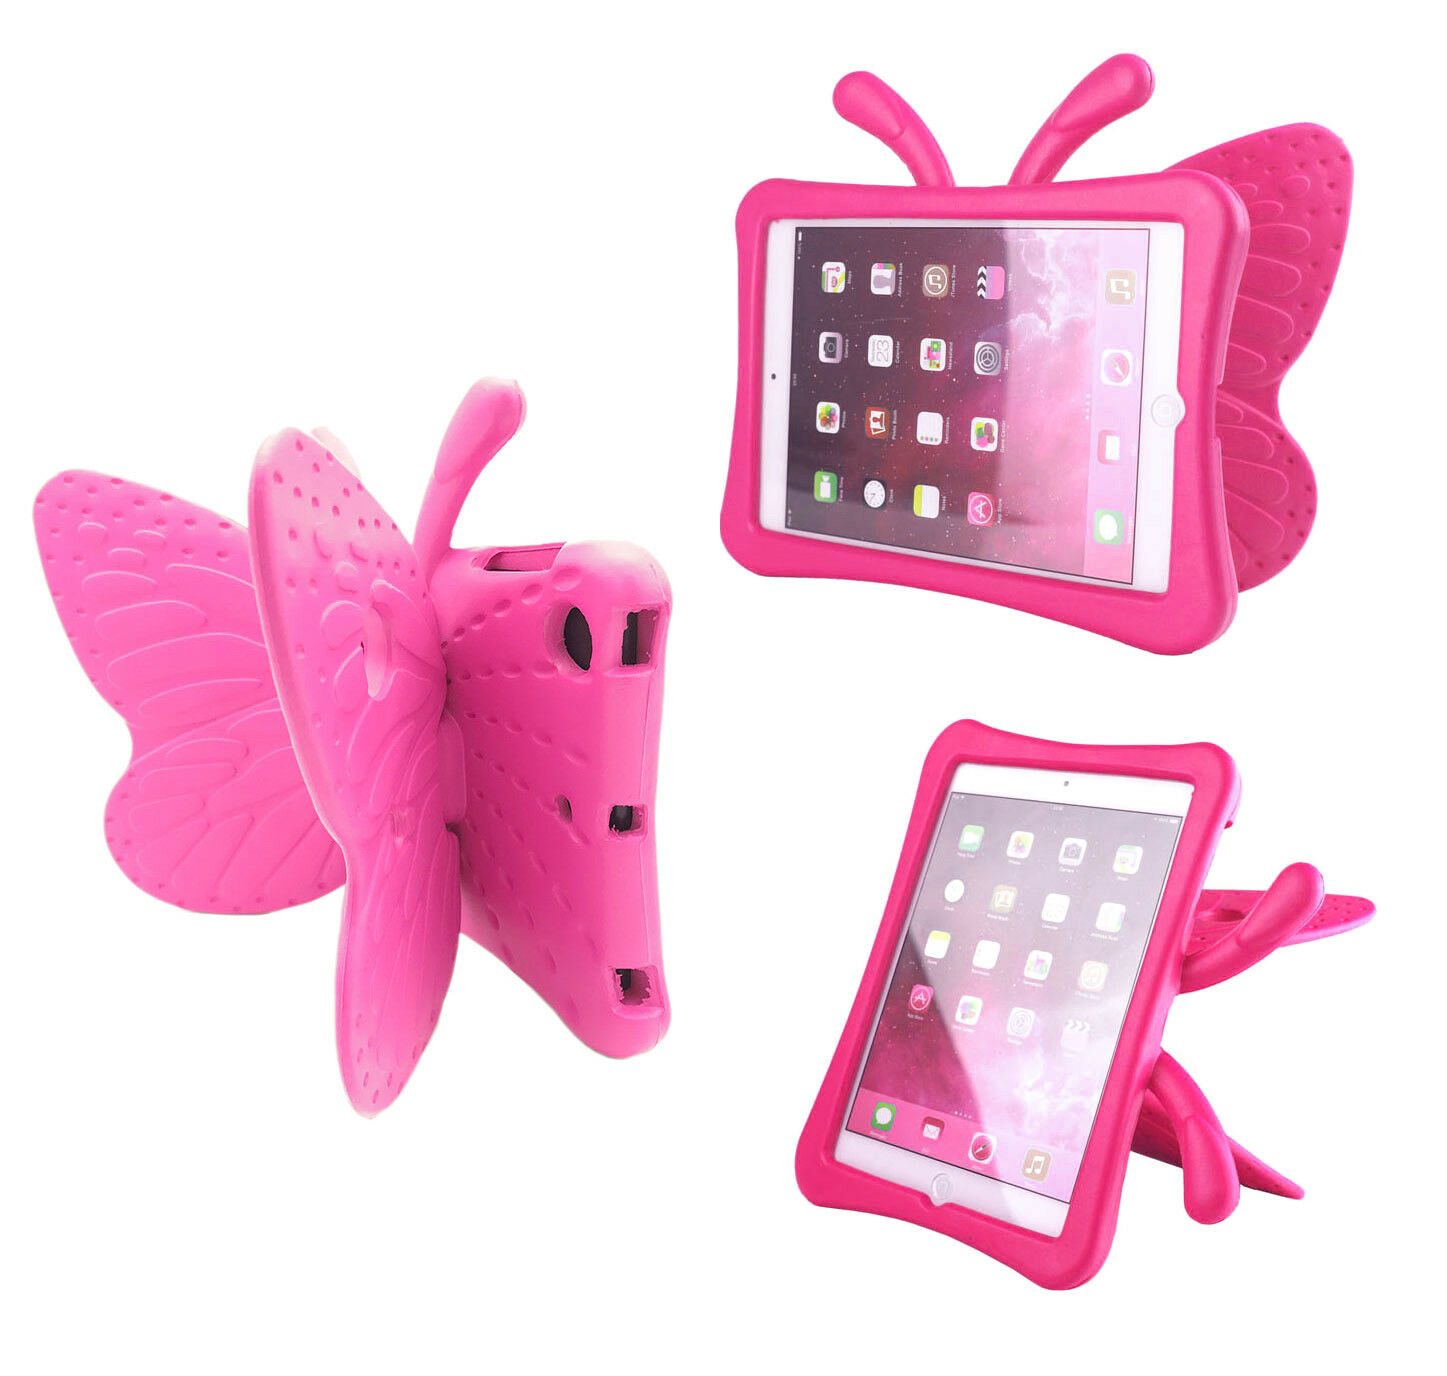 EVA Shockproof Kids Handle Foam Case Cover Stand For iPad Mini 1 2 3 4 Butterfly Cases, Covers, Keyboard Folios